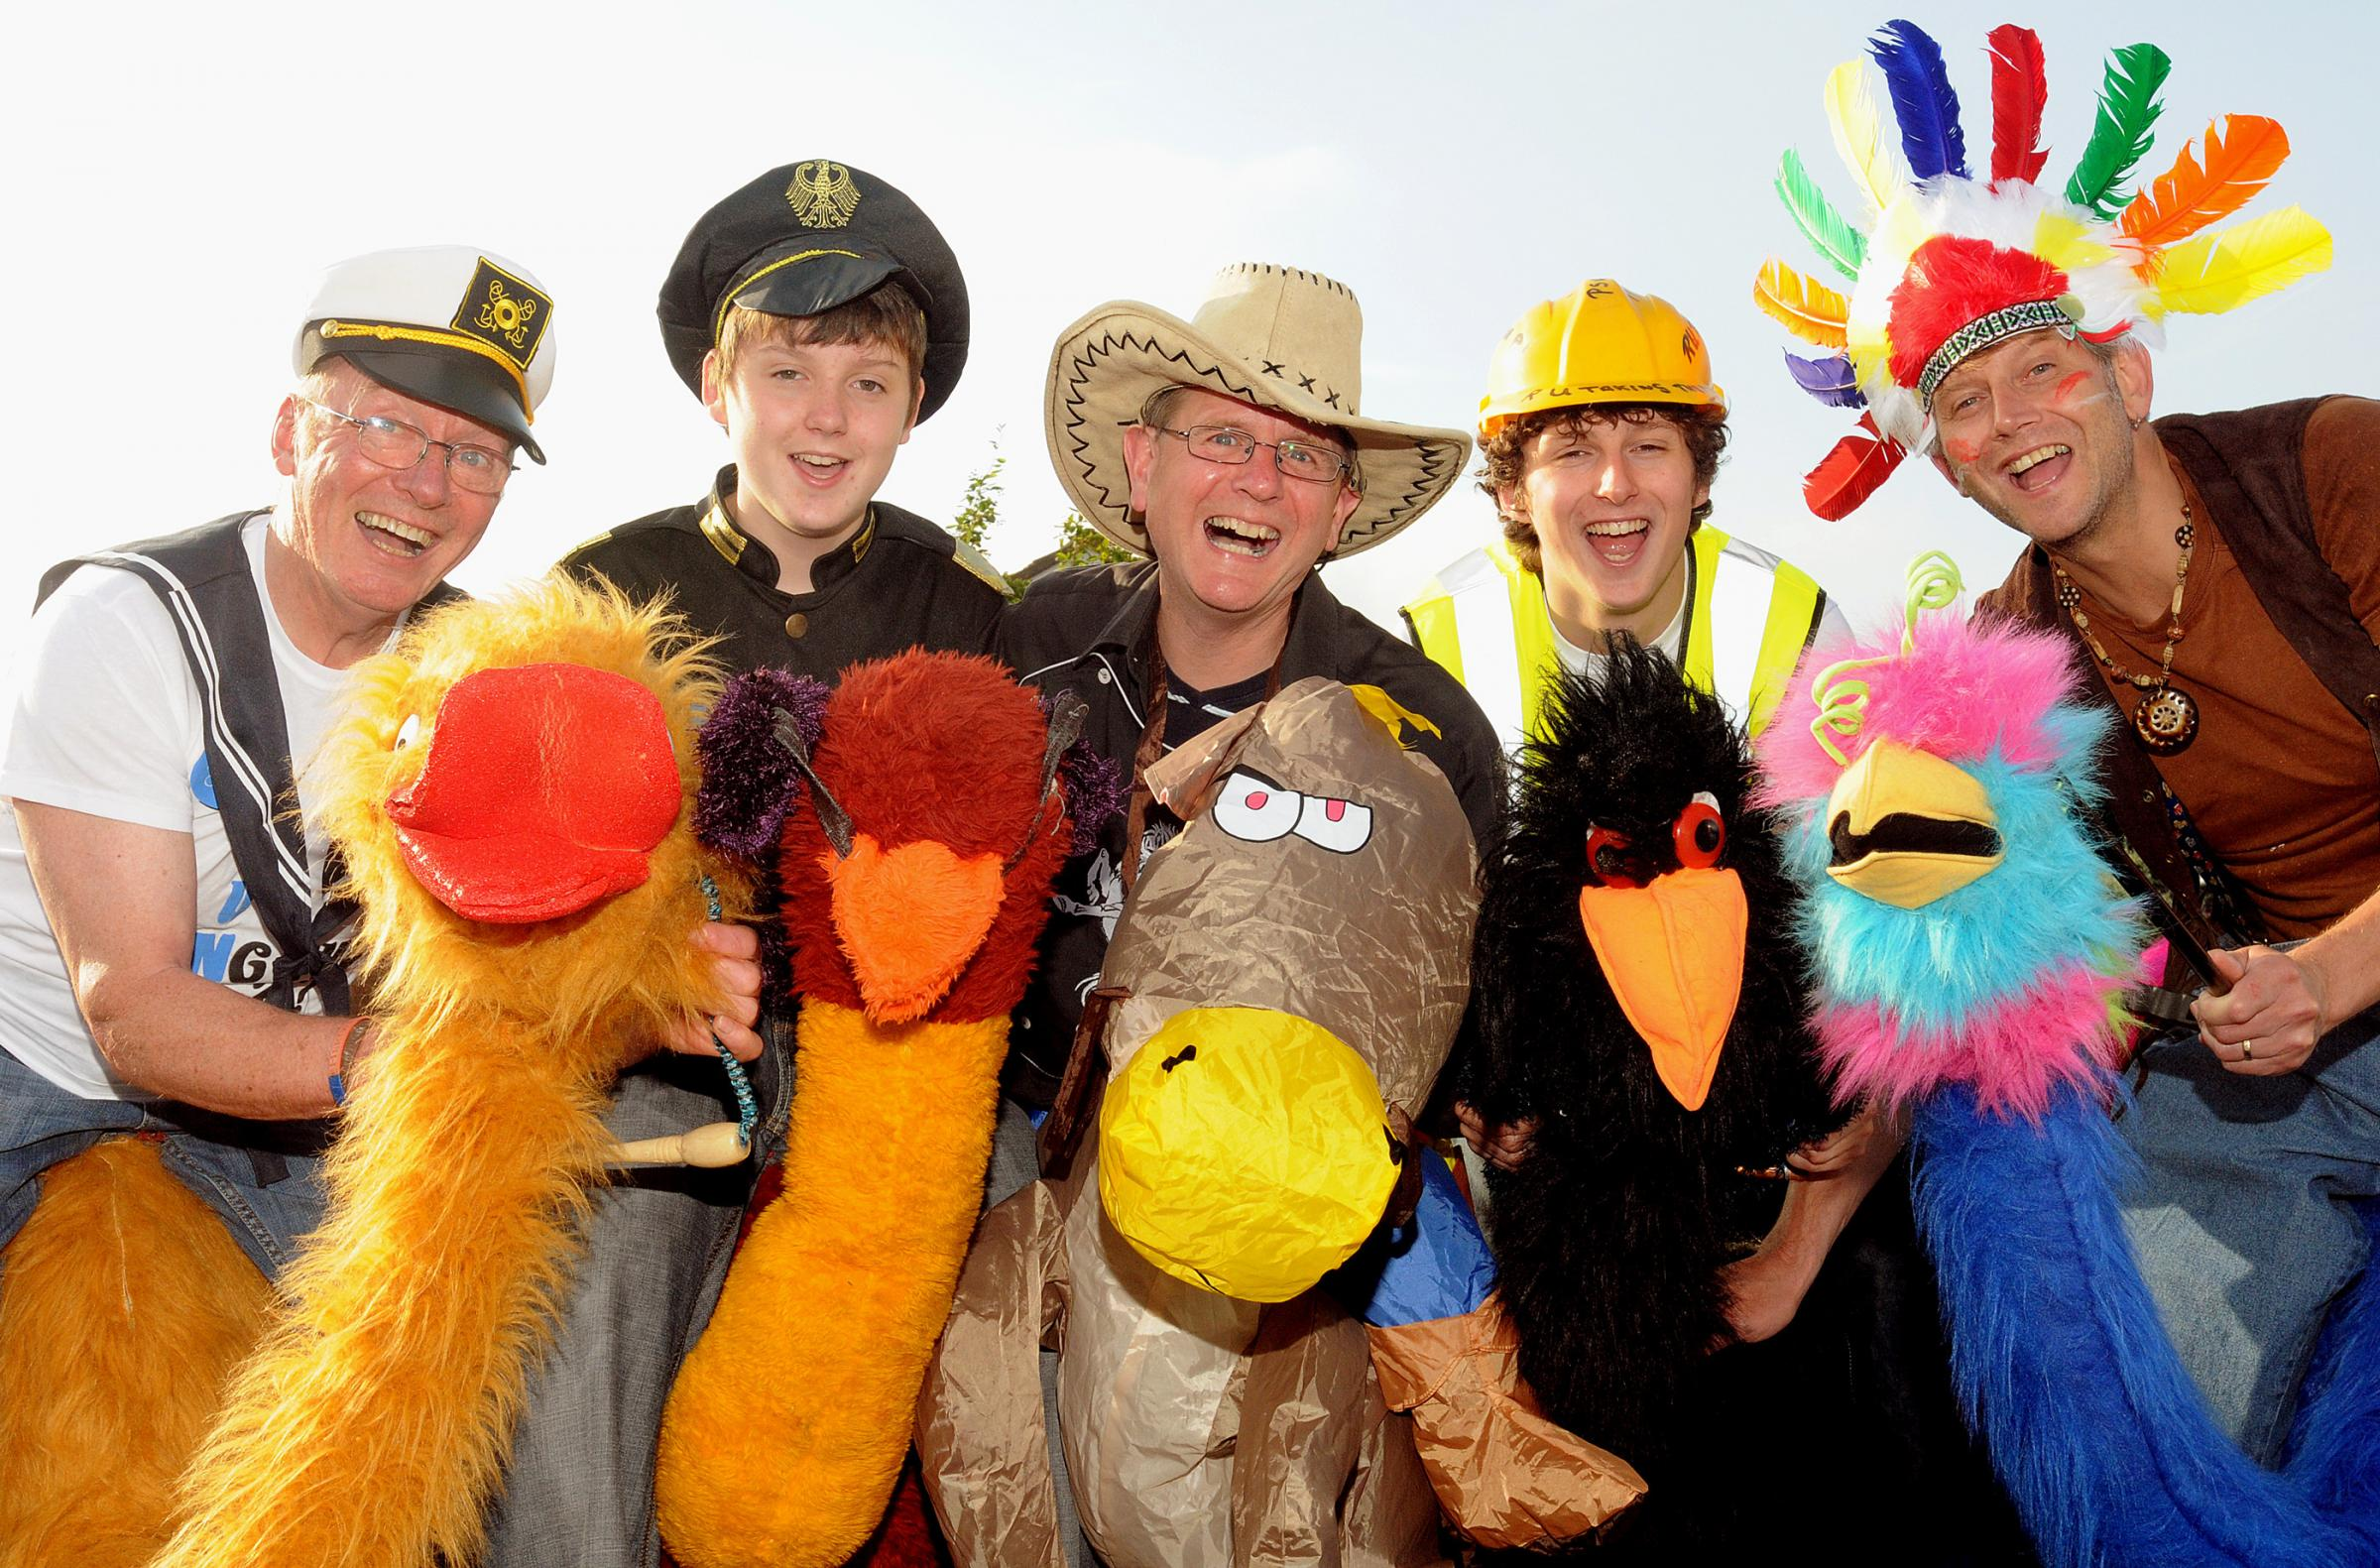 Dave Cordukes, Edward Appleby, David Clarke, Jacob Appleby and David Appleby will run the R U Taking The P? event dressed as 'YMCA' characters on ostriches